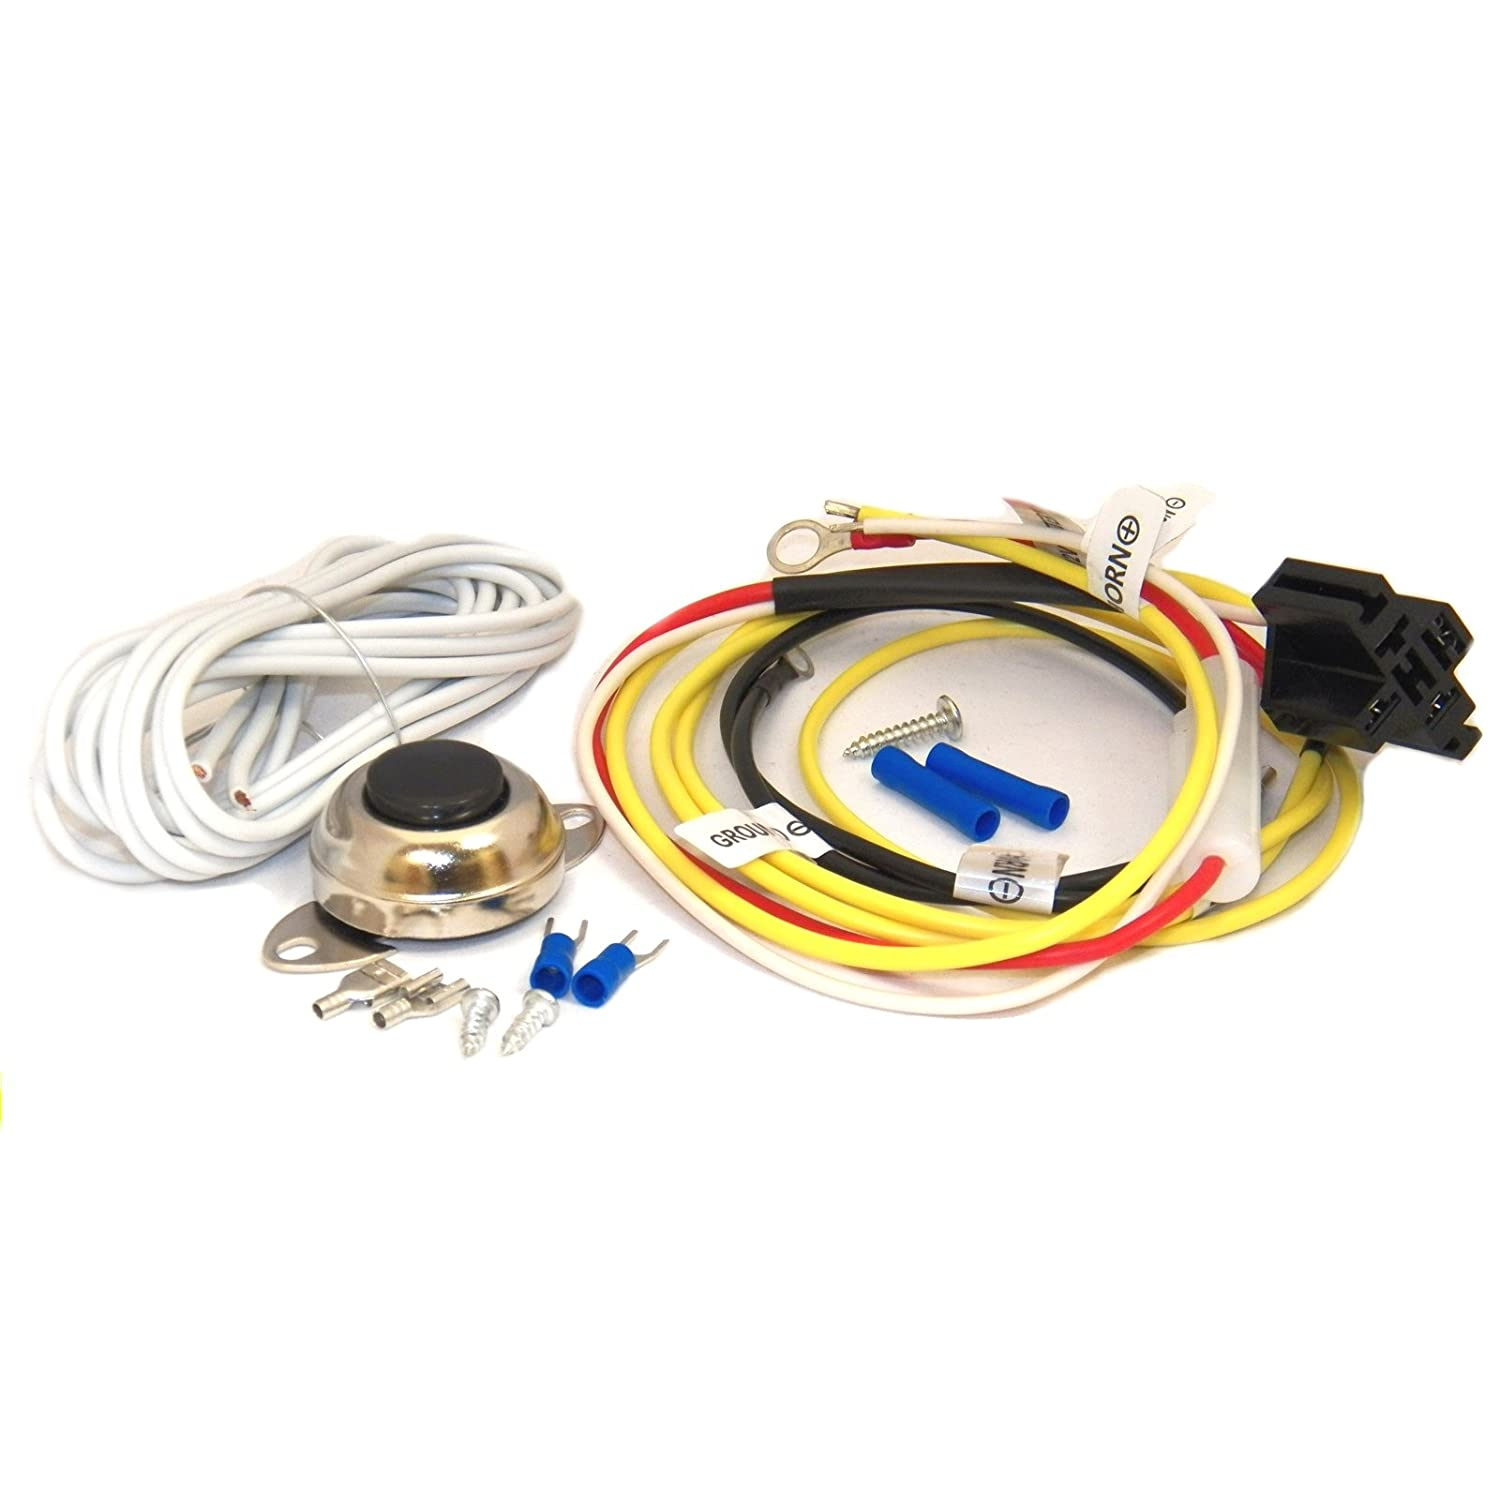 Horn Installation Wire Kit with Fuse and Button Switch